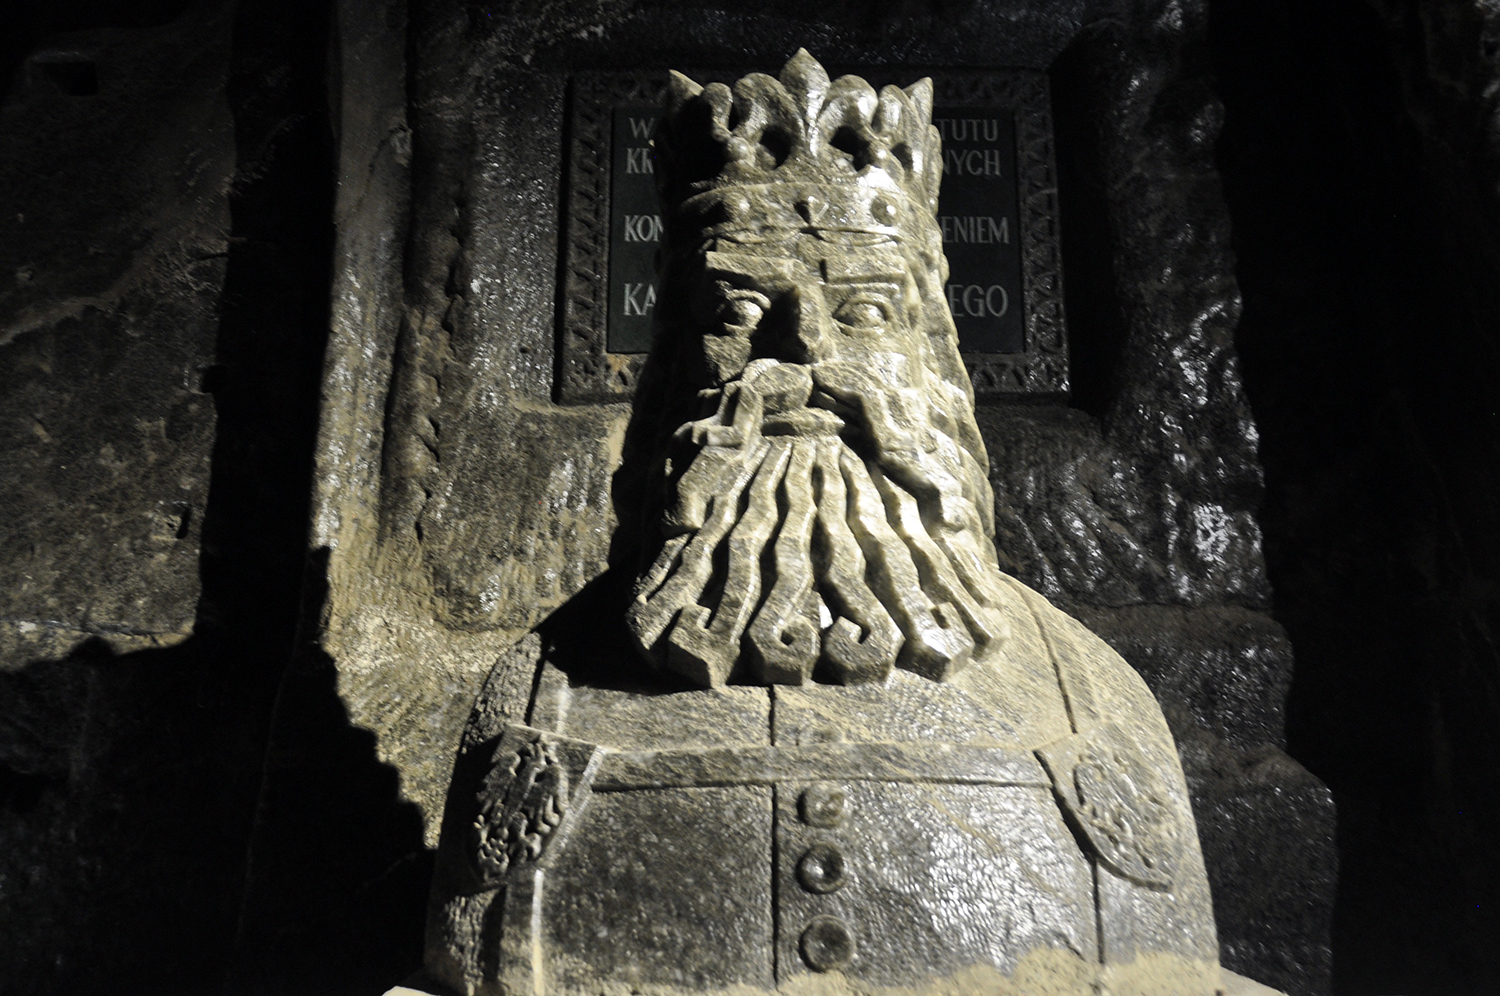 Poland Travel guide Wieliczka Salt Mine Salt King Statue